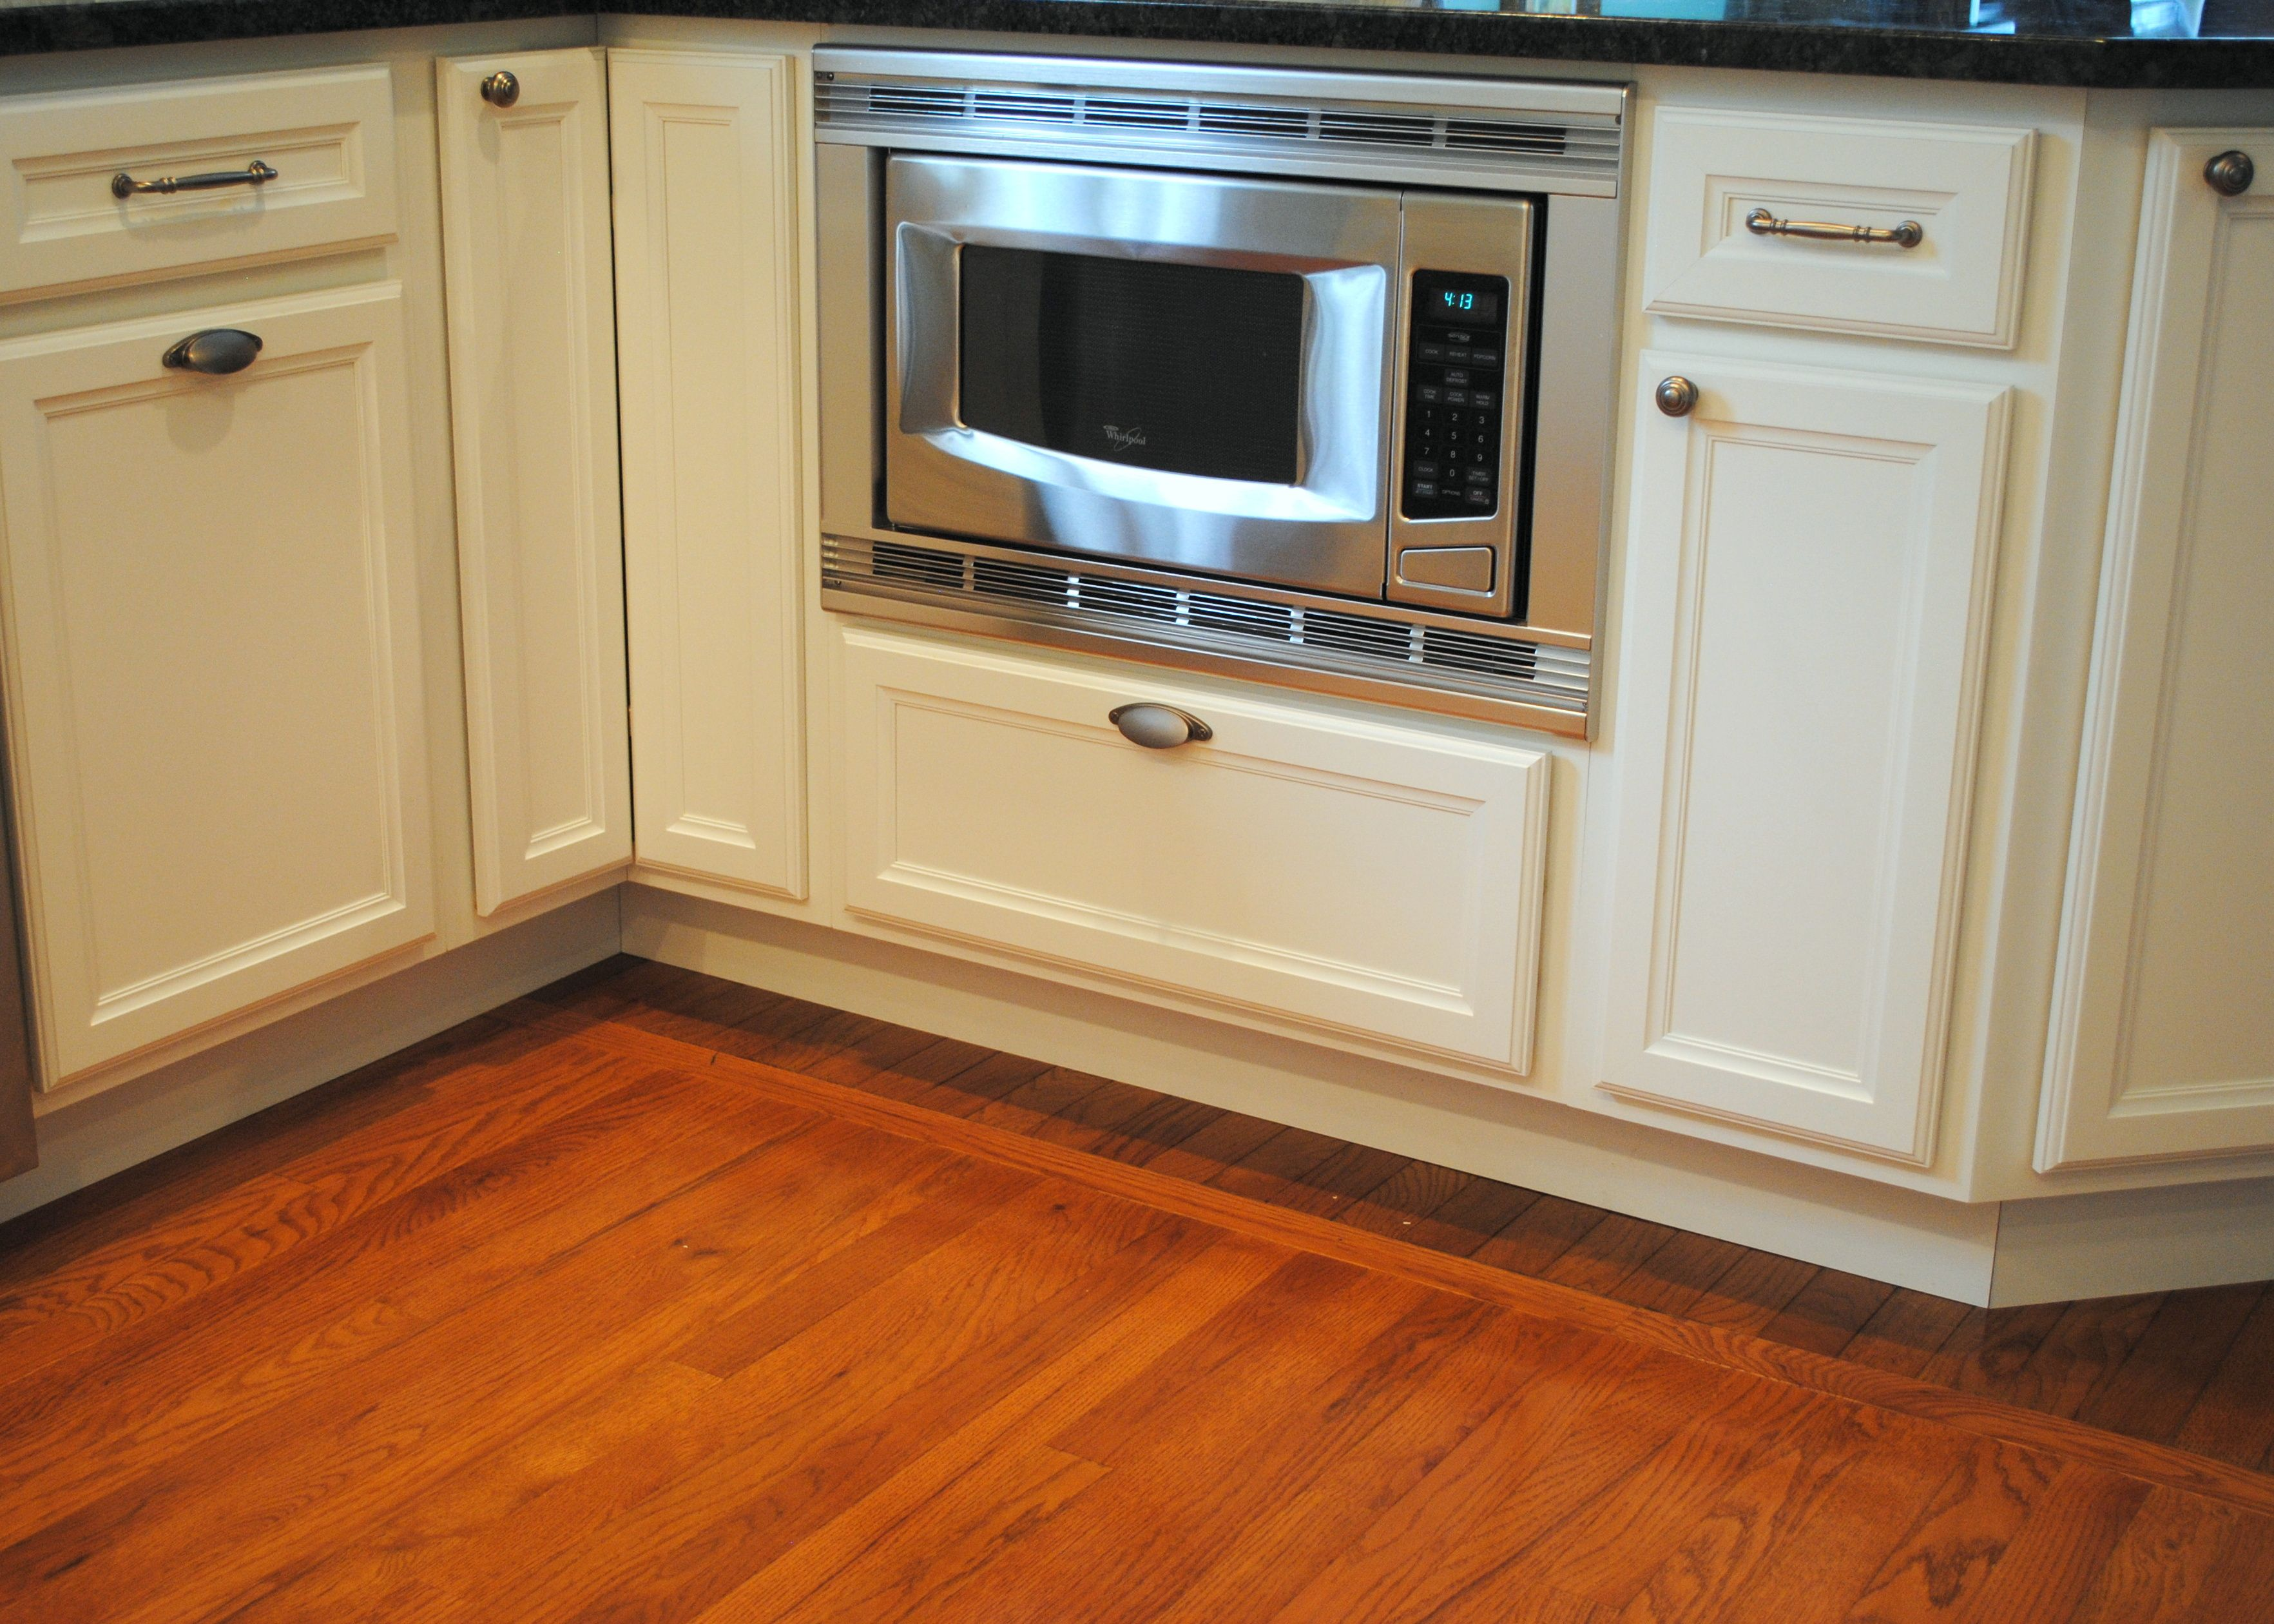 bosch microwave with trim kit  Google Search  microwave